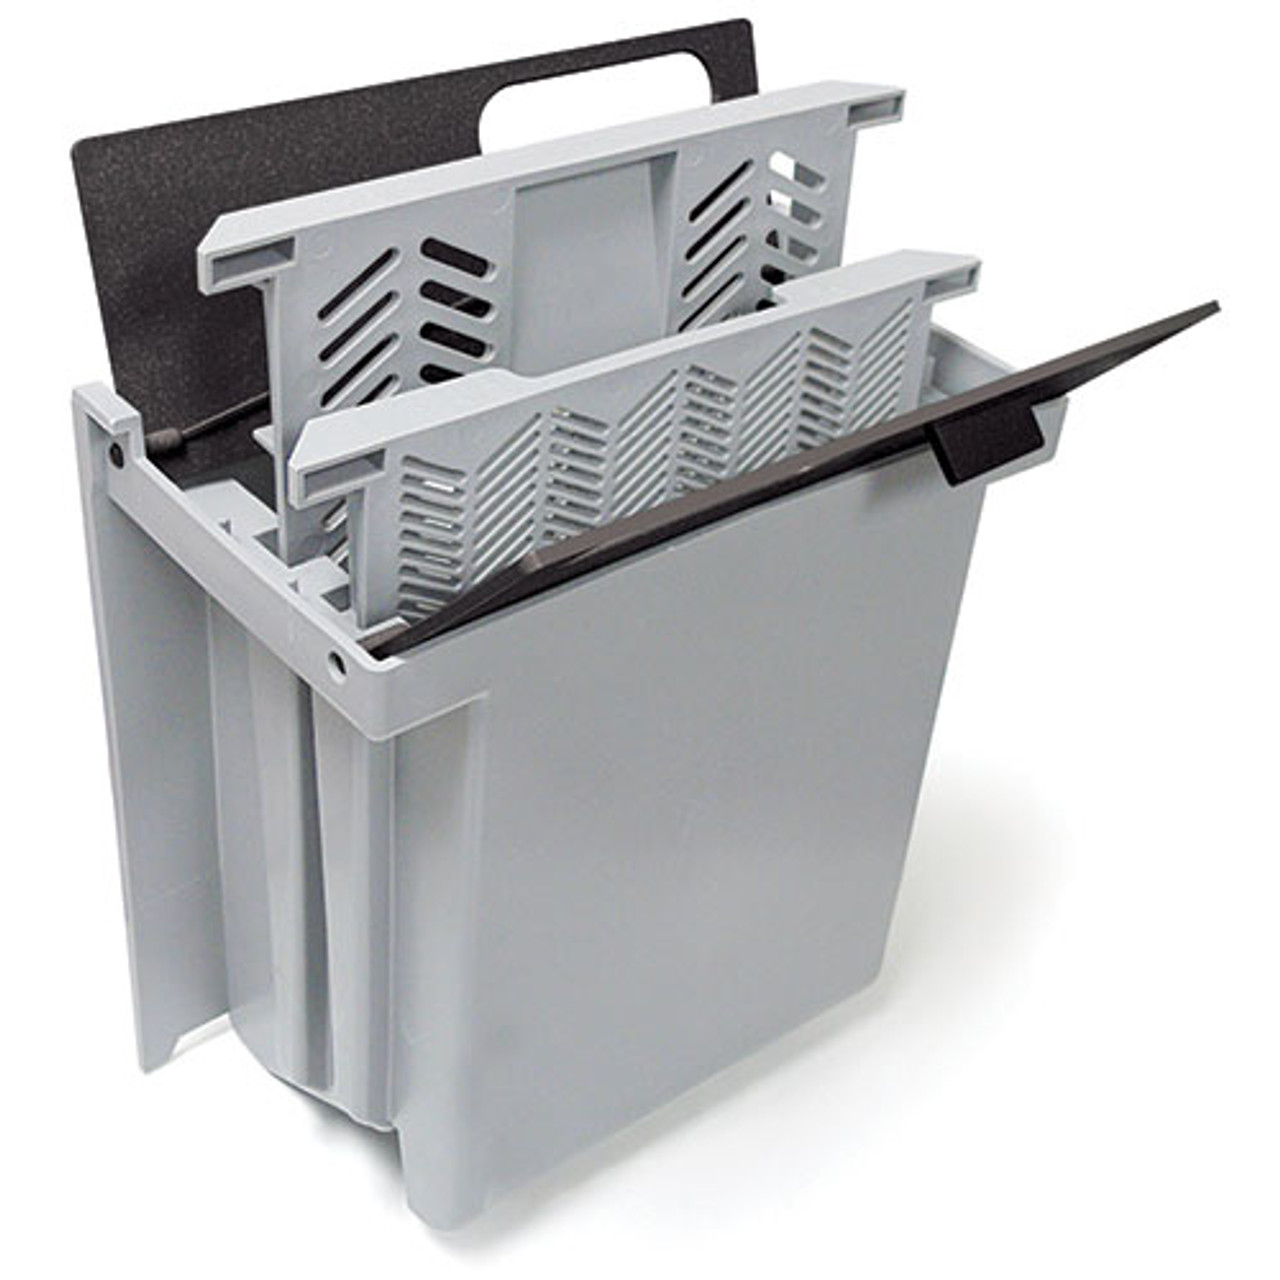 Solids Basket Accessory for Grease Traps